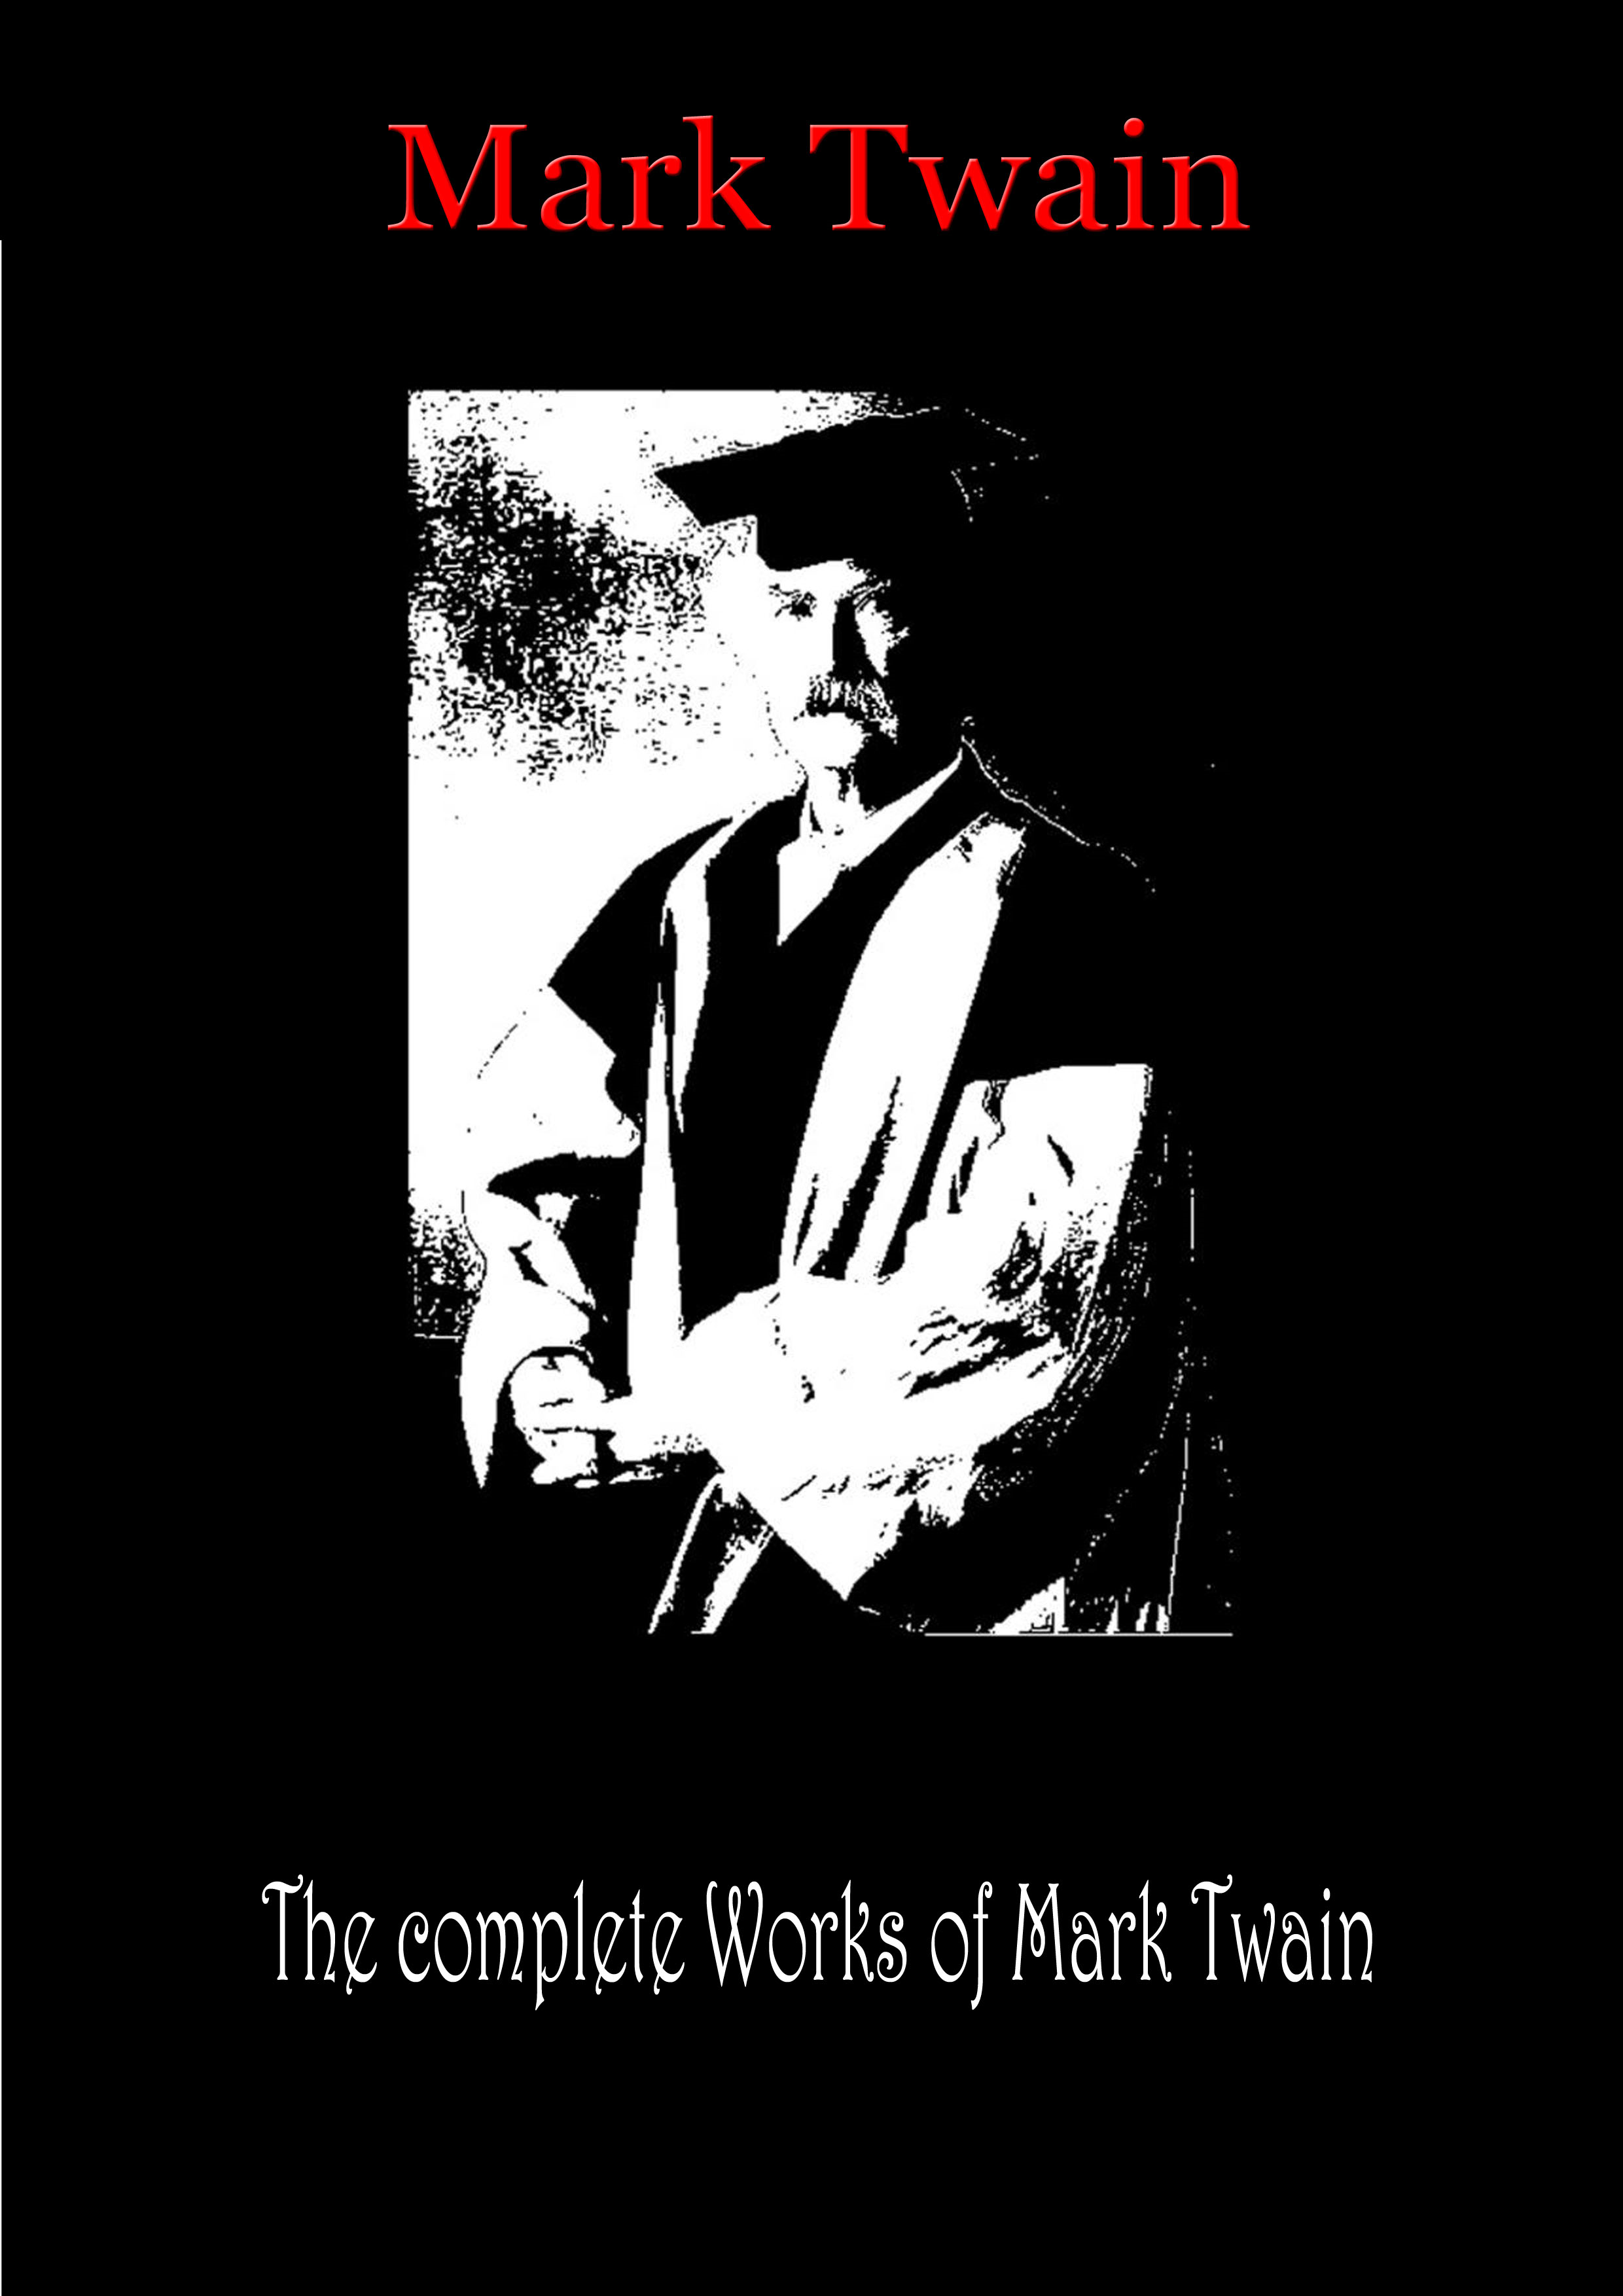 The complete Works of Mark Twain By: Mark Twain